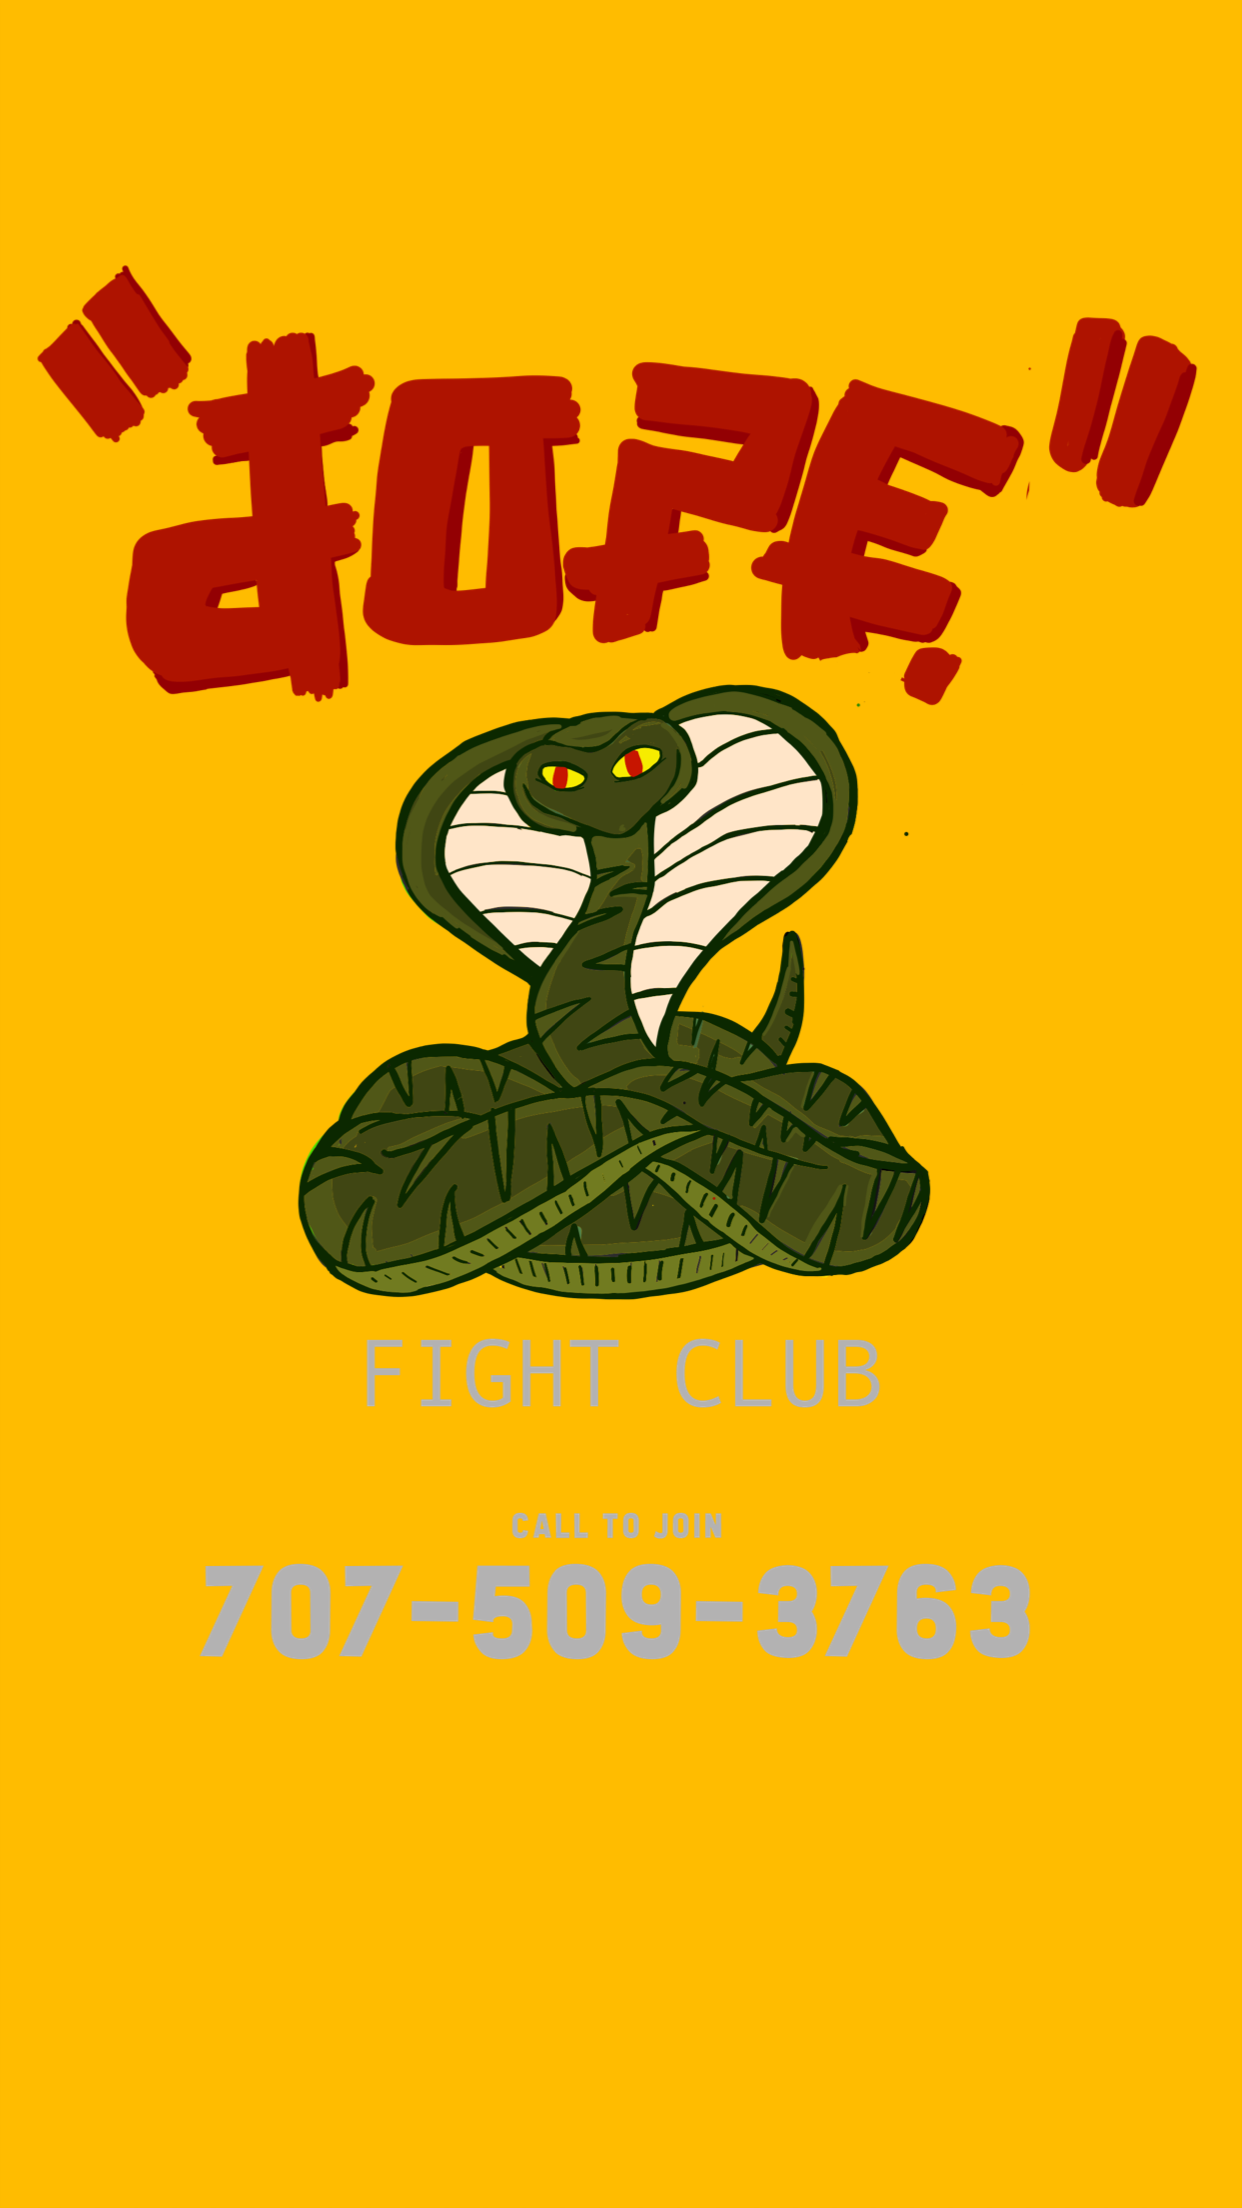 Dope-Fight-Club.png